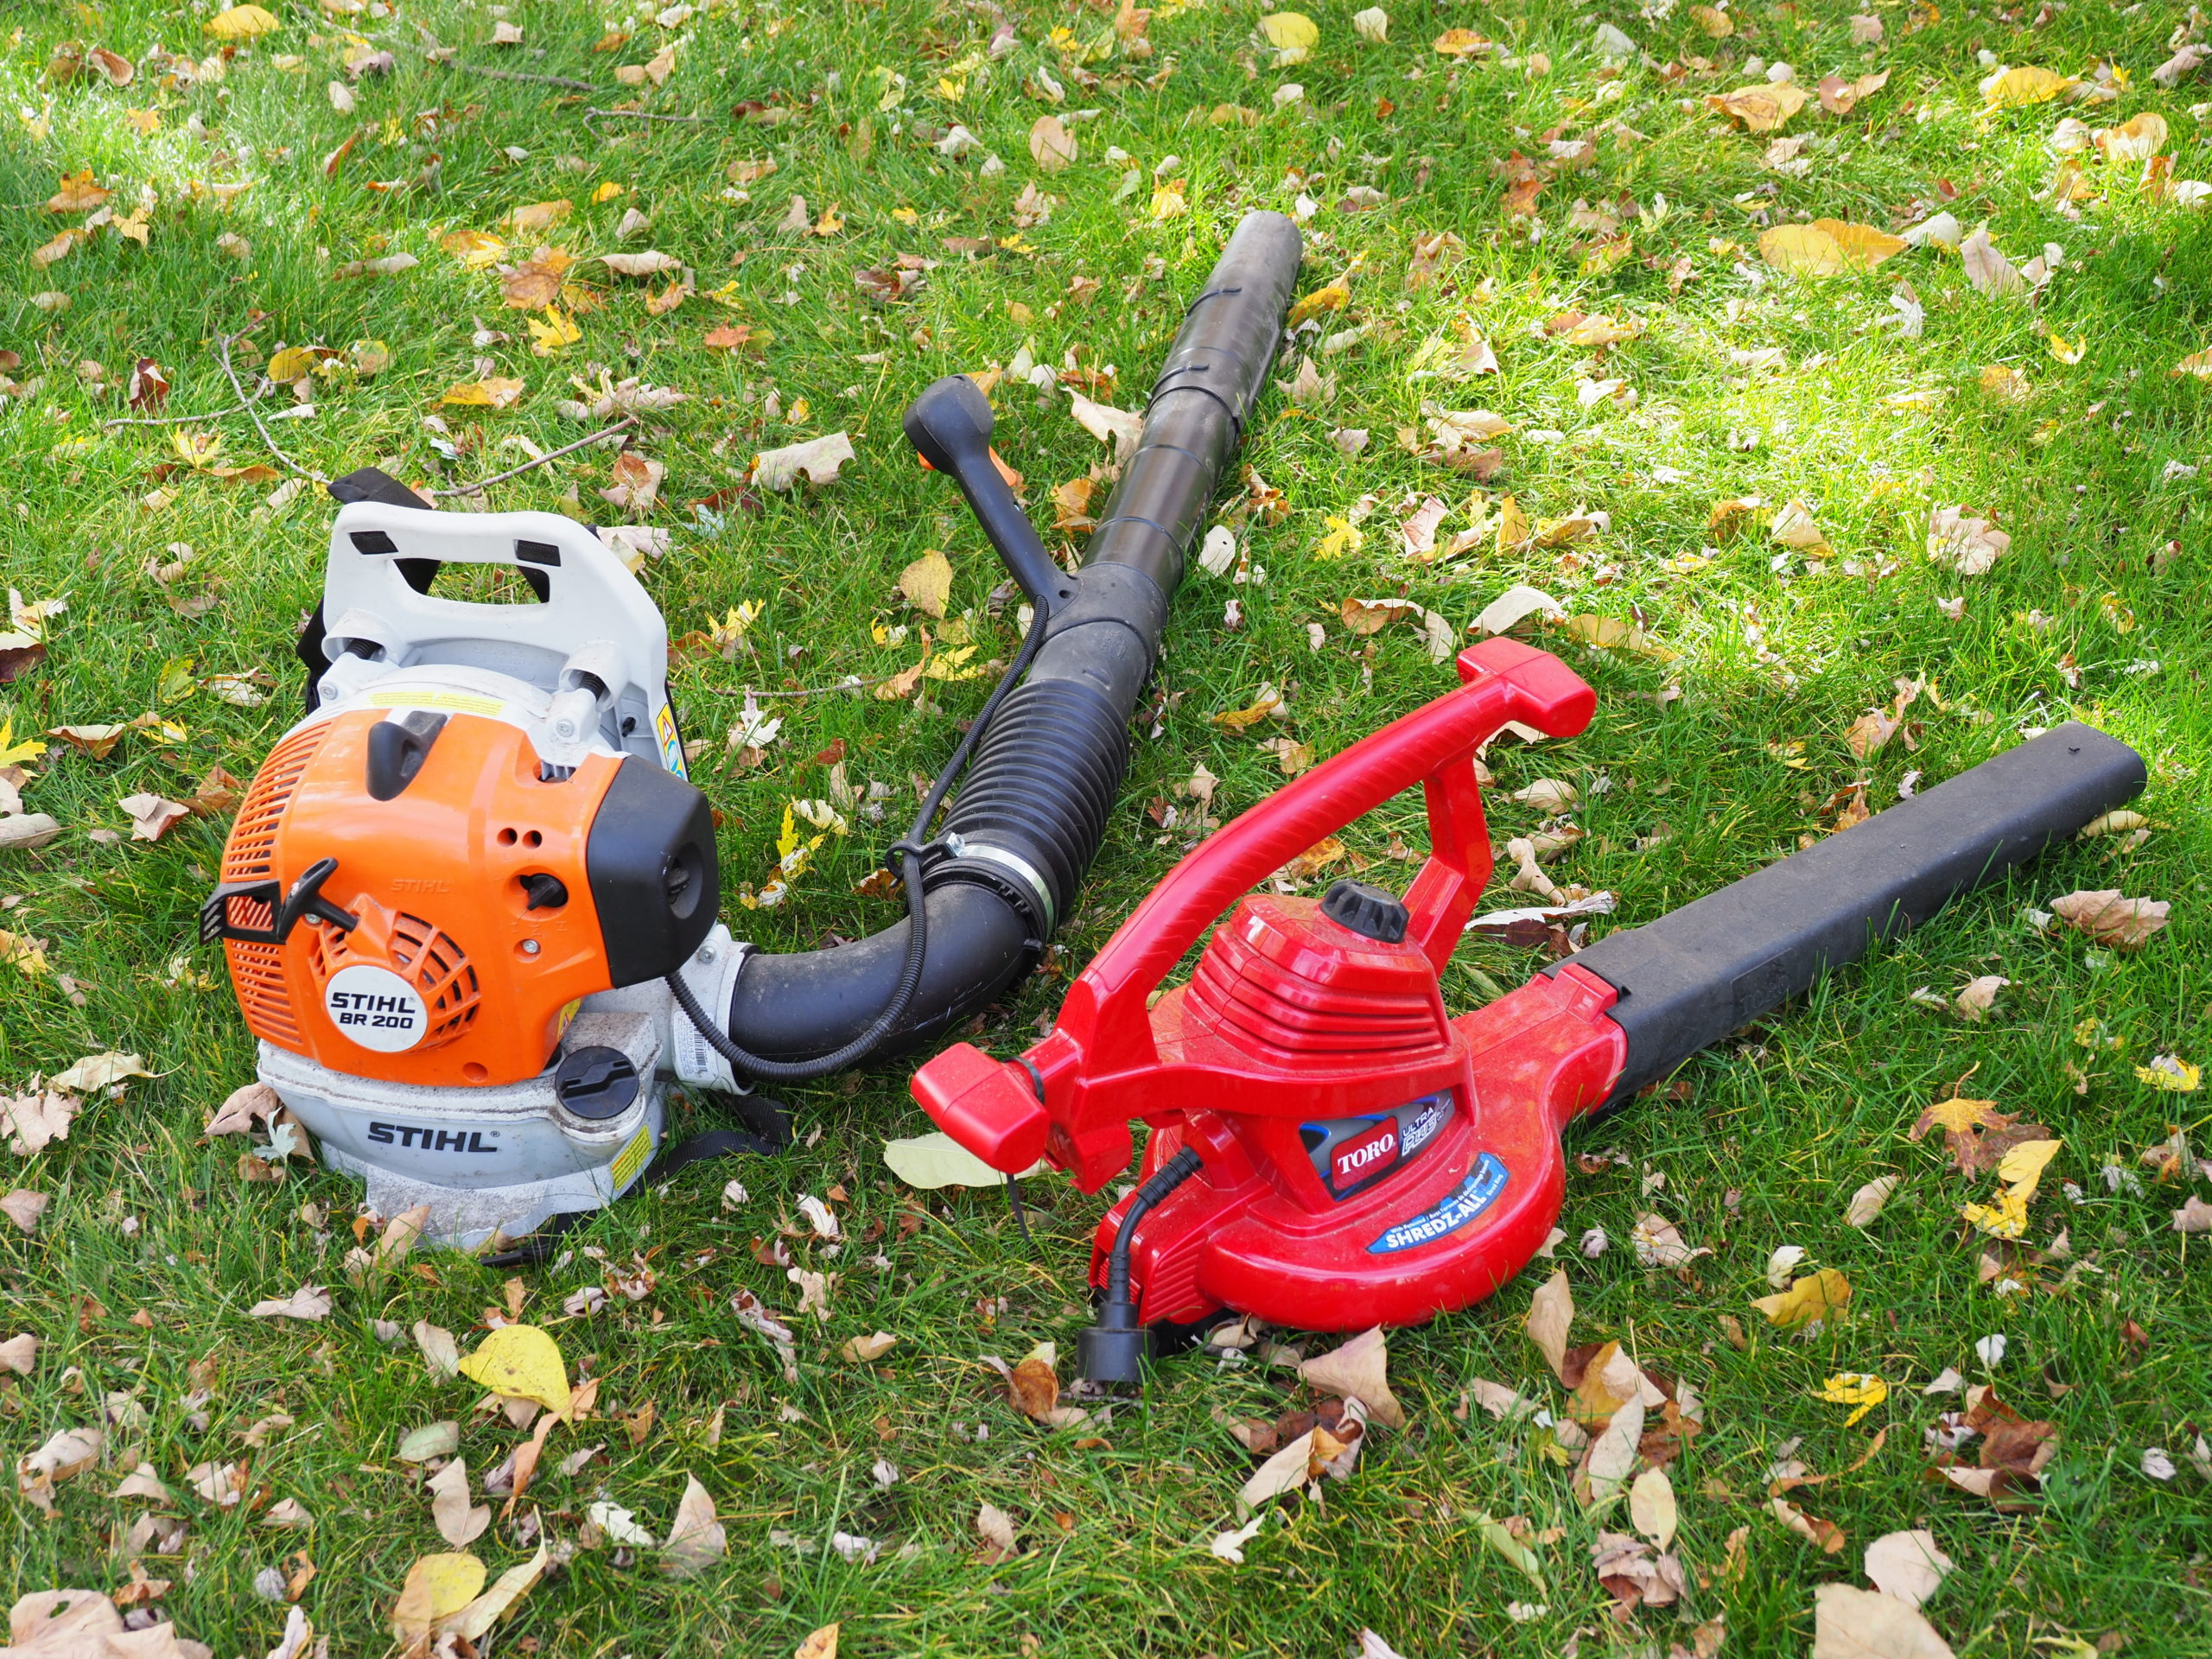 On the left, a small and lightweight 2-cycle leaf blower. The one on the right is a corded electric blower/shredder that cost less than a third of the gas blower, blows nearly as well but unlike the gas one the electric can shred the leaves it collects and it weighs 40 percent less. However, it's only good for about 100 feet from your electric outlet.